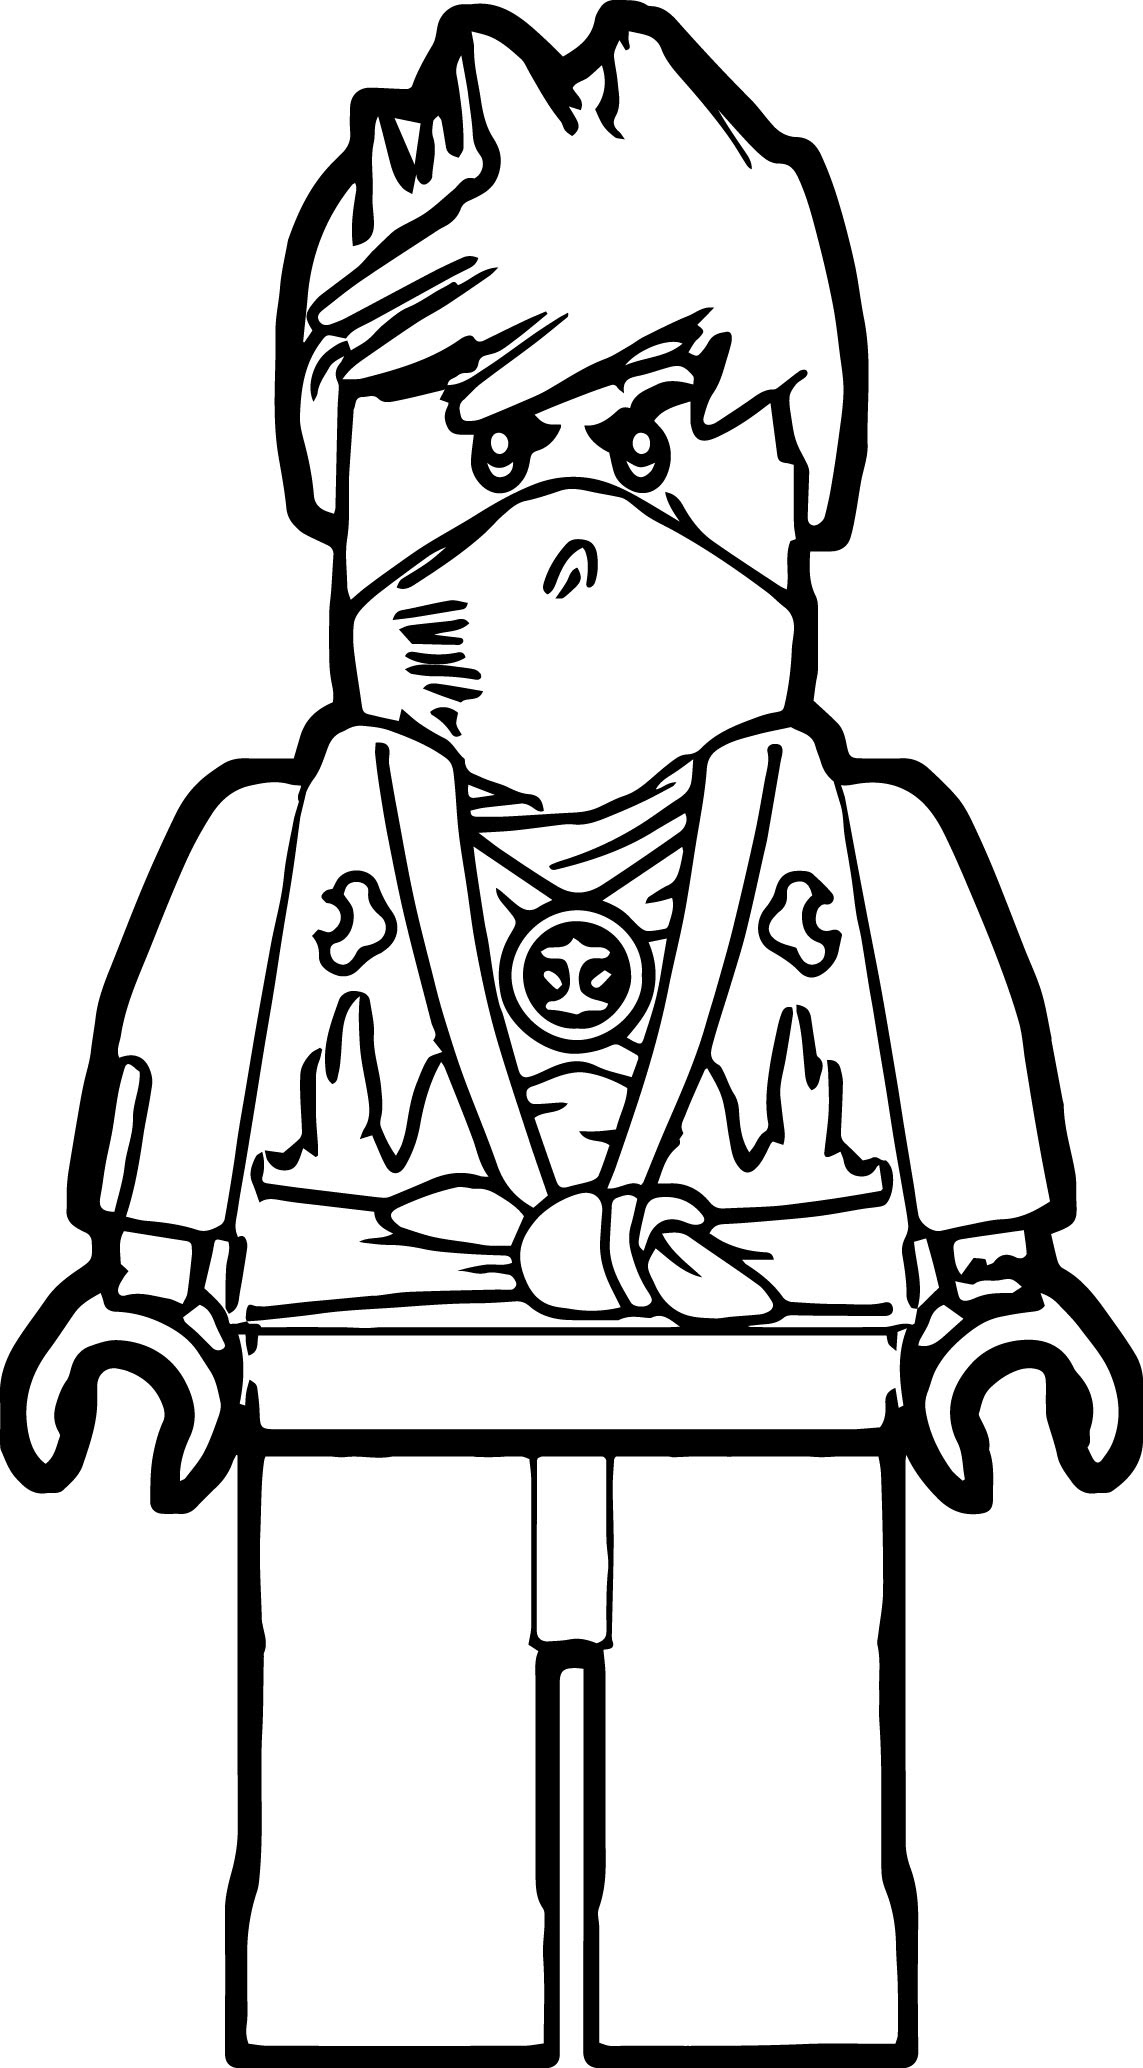 Lego Coloring Pages | Wecoloringpage.com